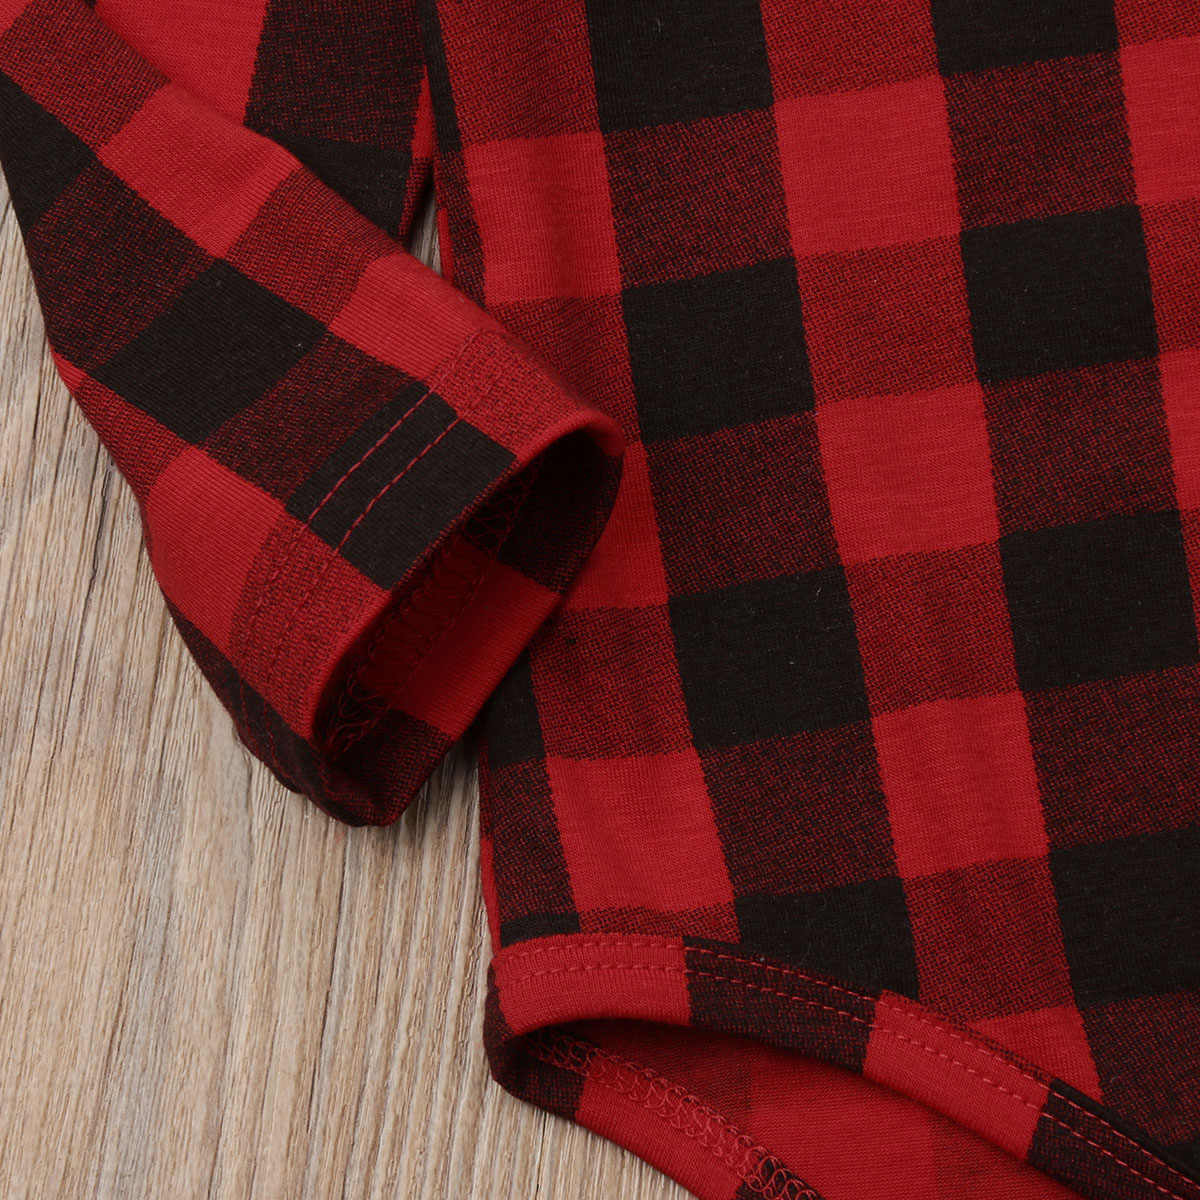 2018 Brand New Infant Kids Baby Girls Boys Xmas Checked Bodysuits Ruffles Long Sleeve Plaid Red Cotton Autumn Causal Jumpsuits